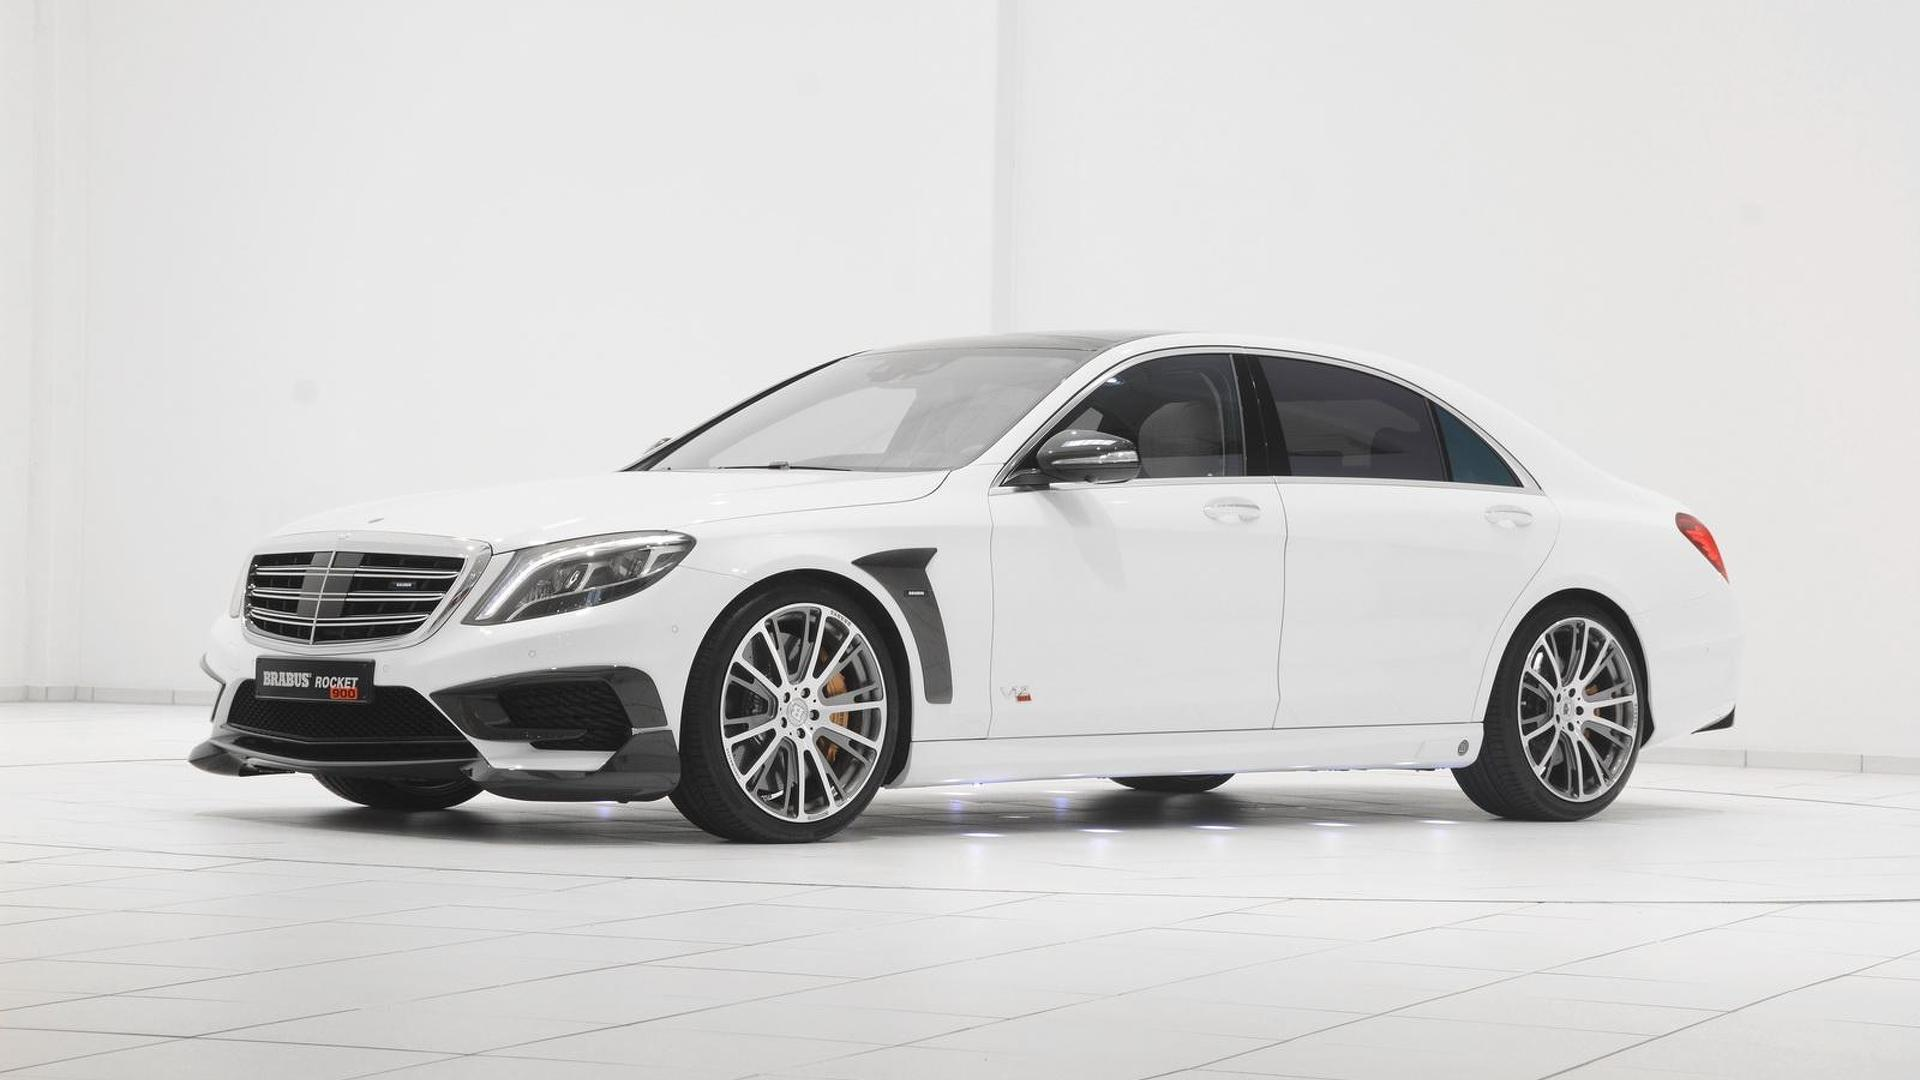 Brabus rocket 900 is a heavily tuned mercedes benz s65 amg for Mercedes benz amg s65